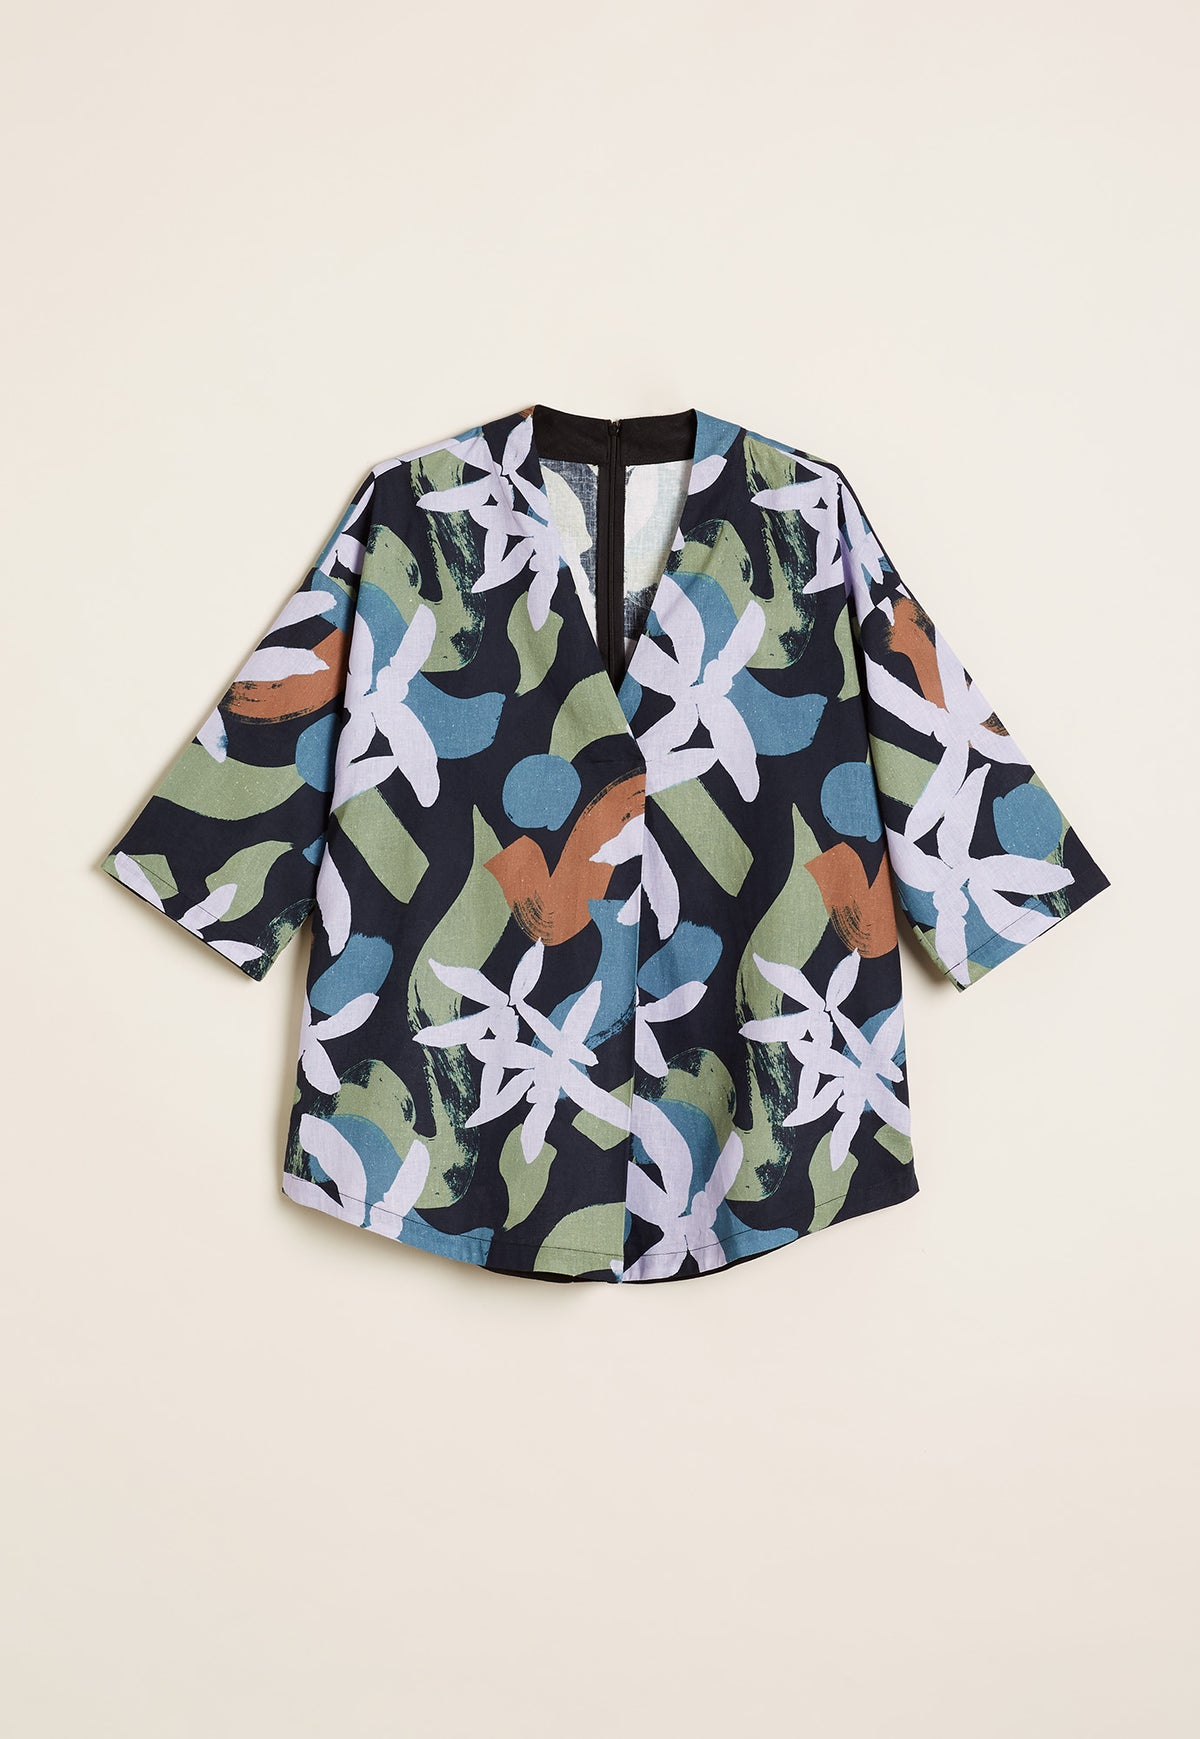 Shawl Top - Abstract Floral